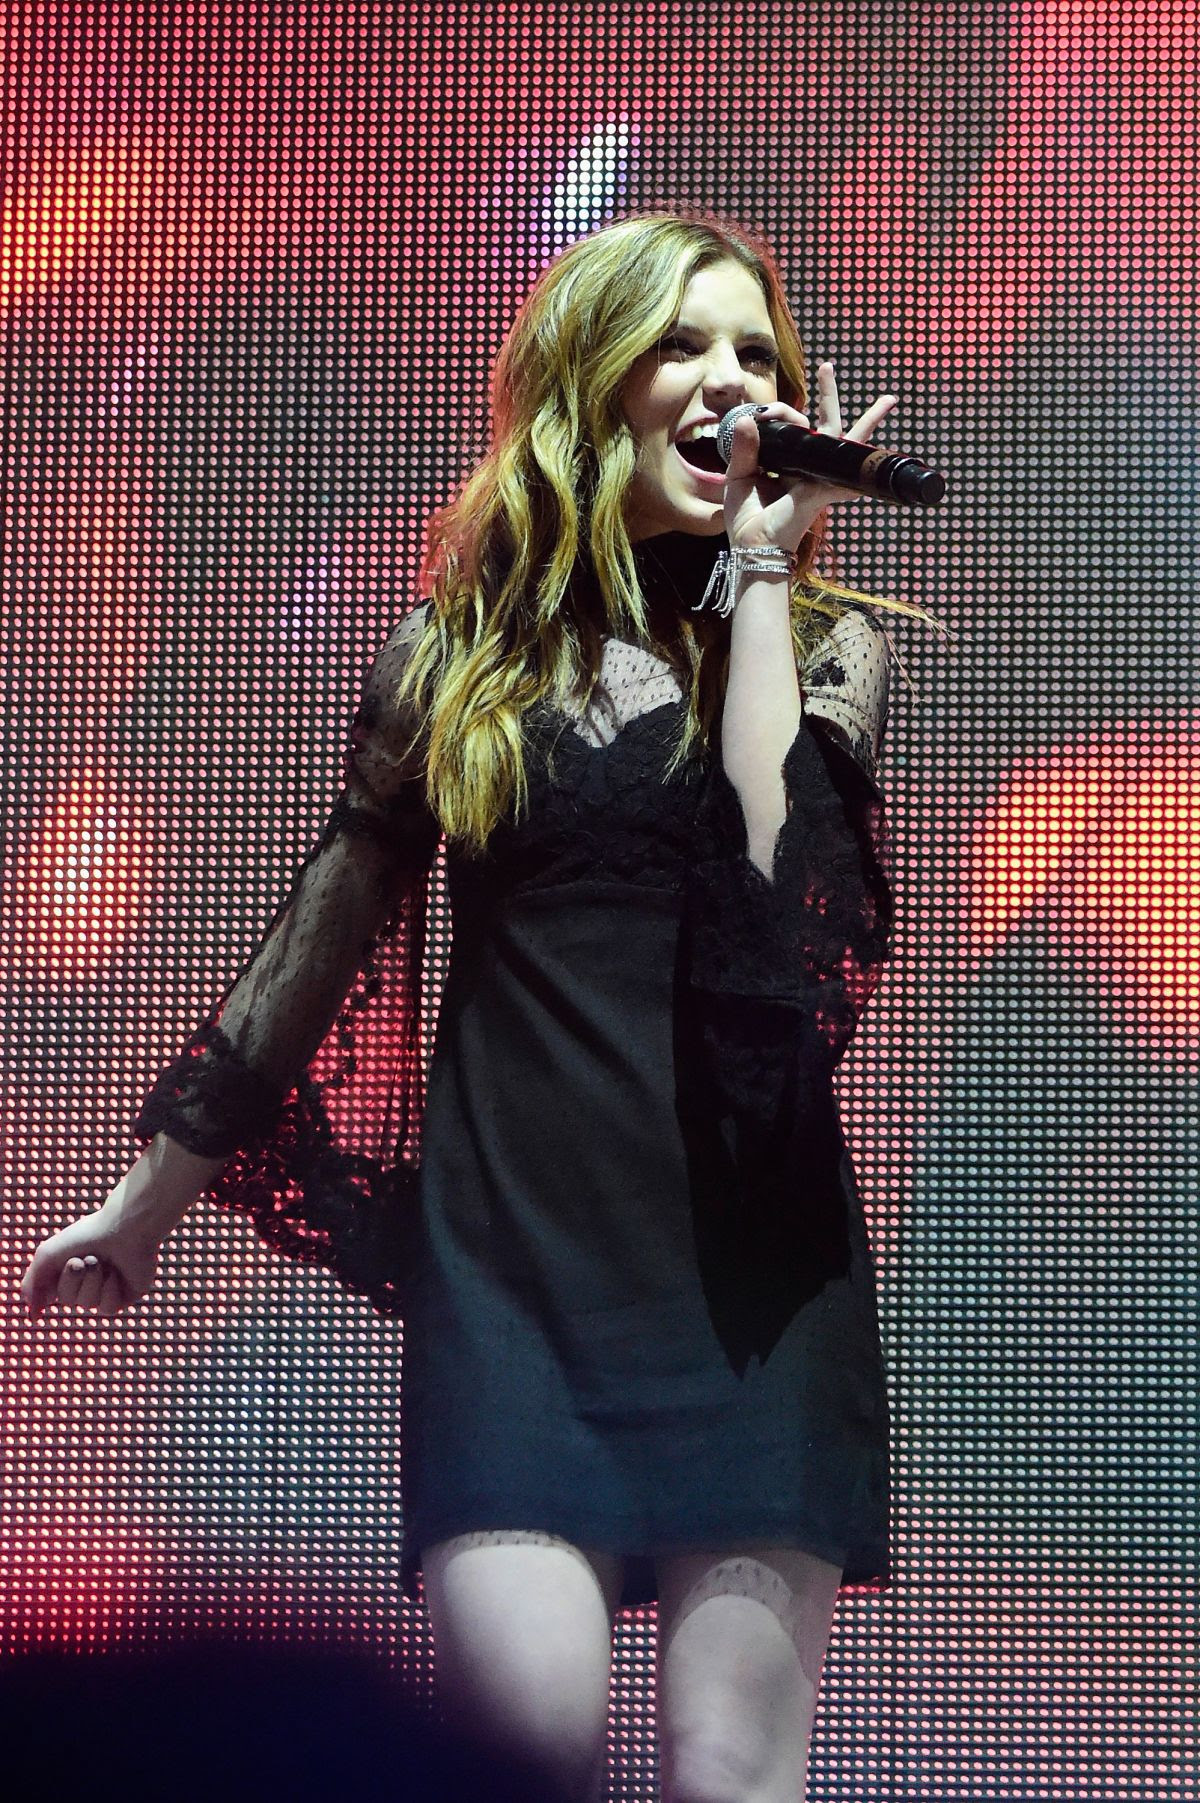 SYDNEY SIEROTA Performs at Coachella Valley Music and Arts Festival in Indio 04/16/2016